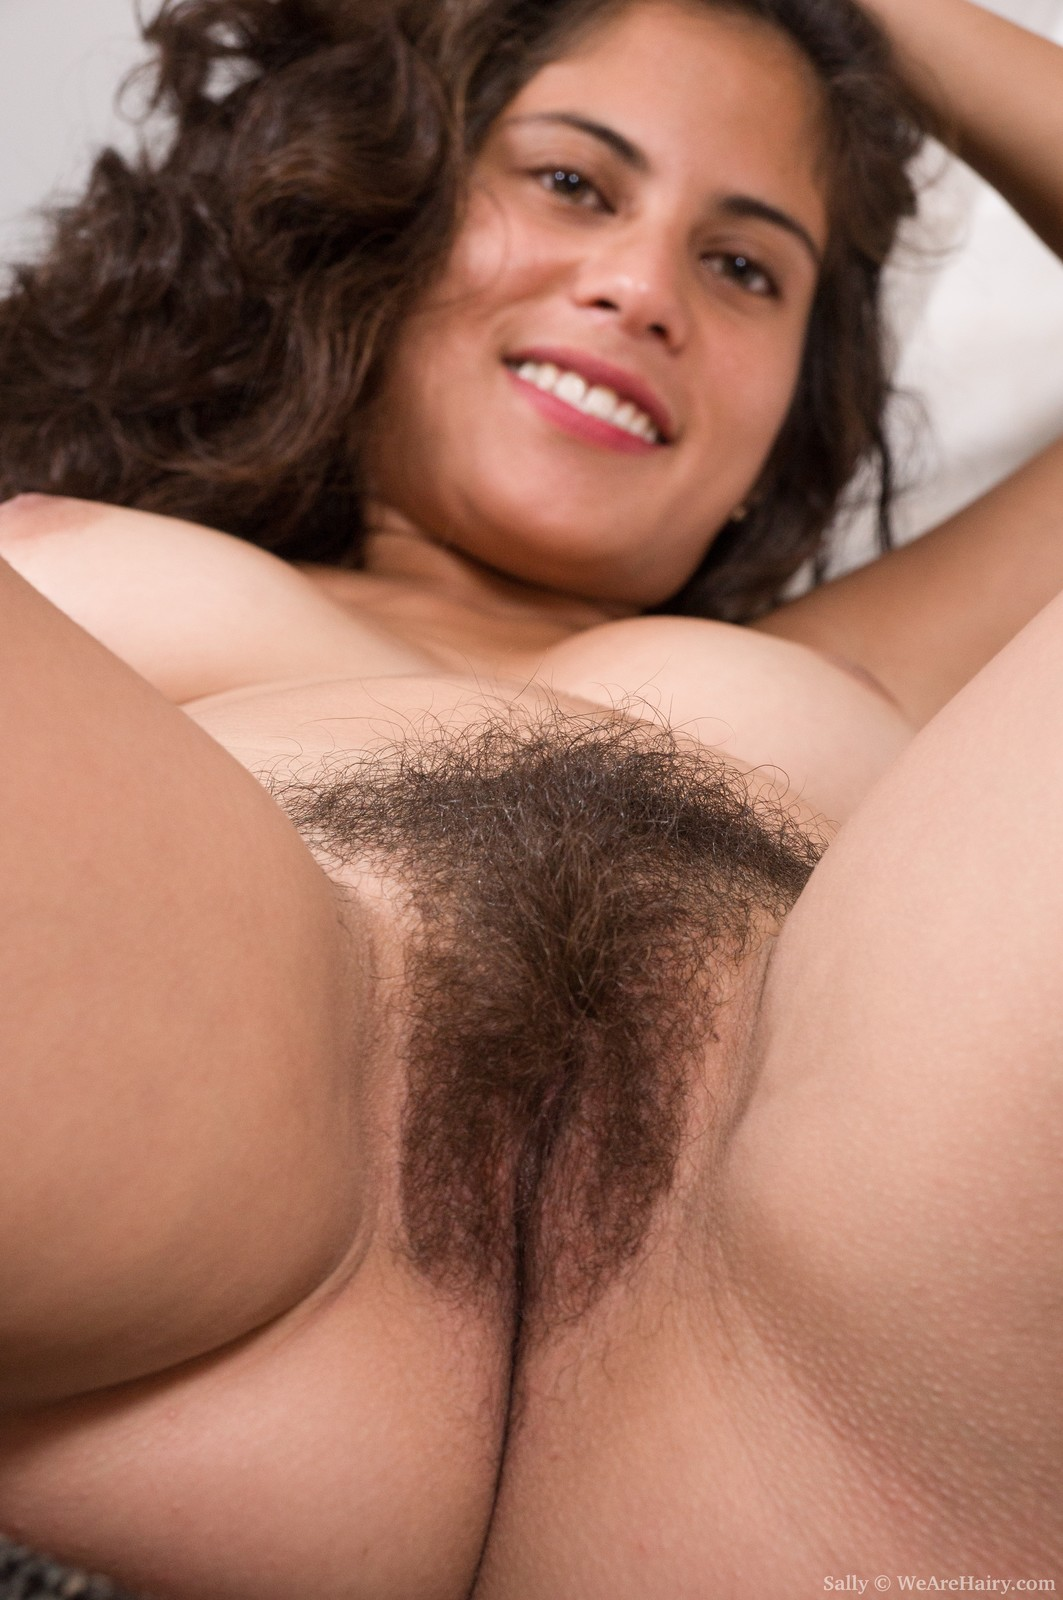 Hairy pussy photo gallery stuff